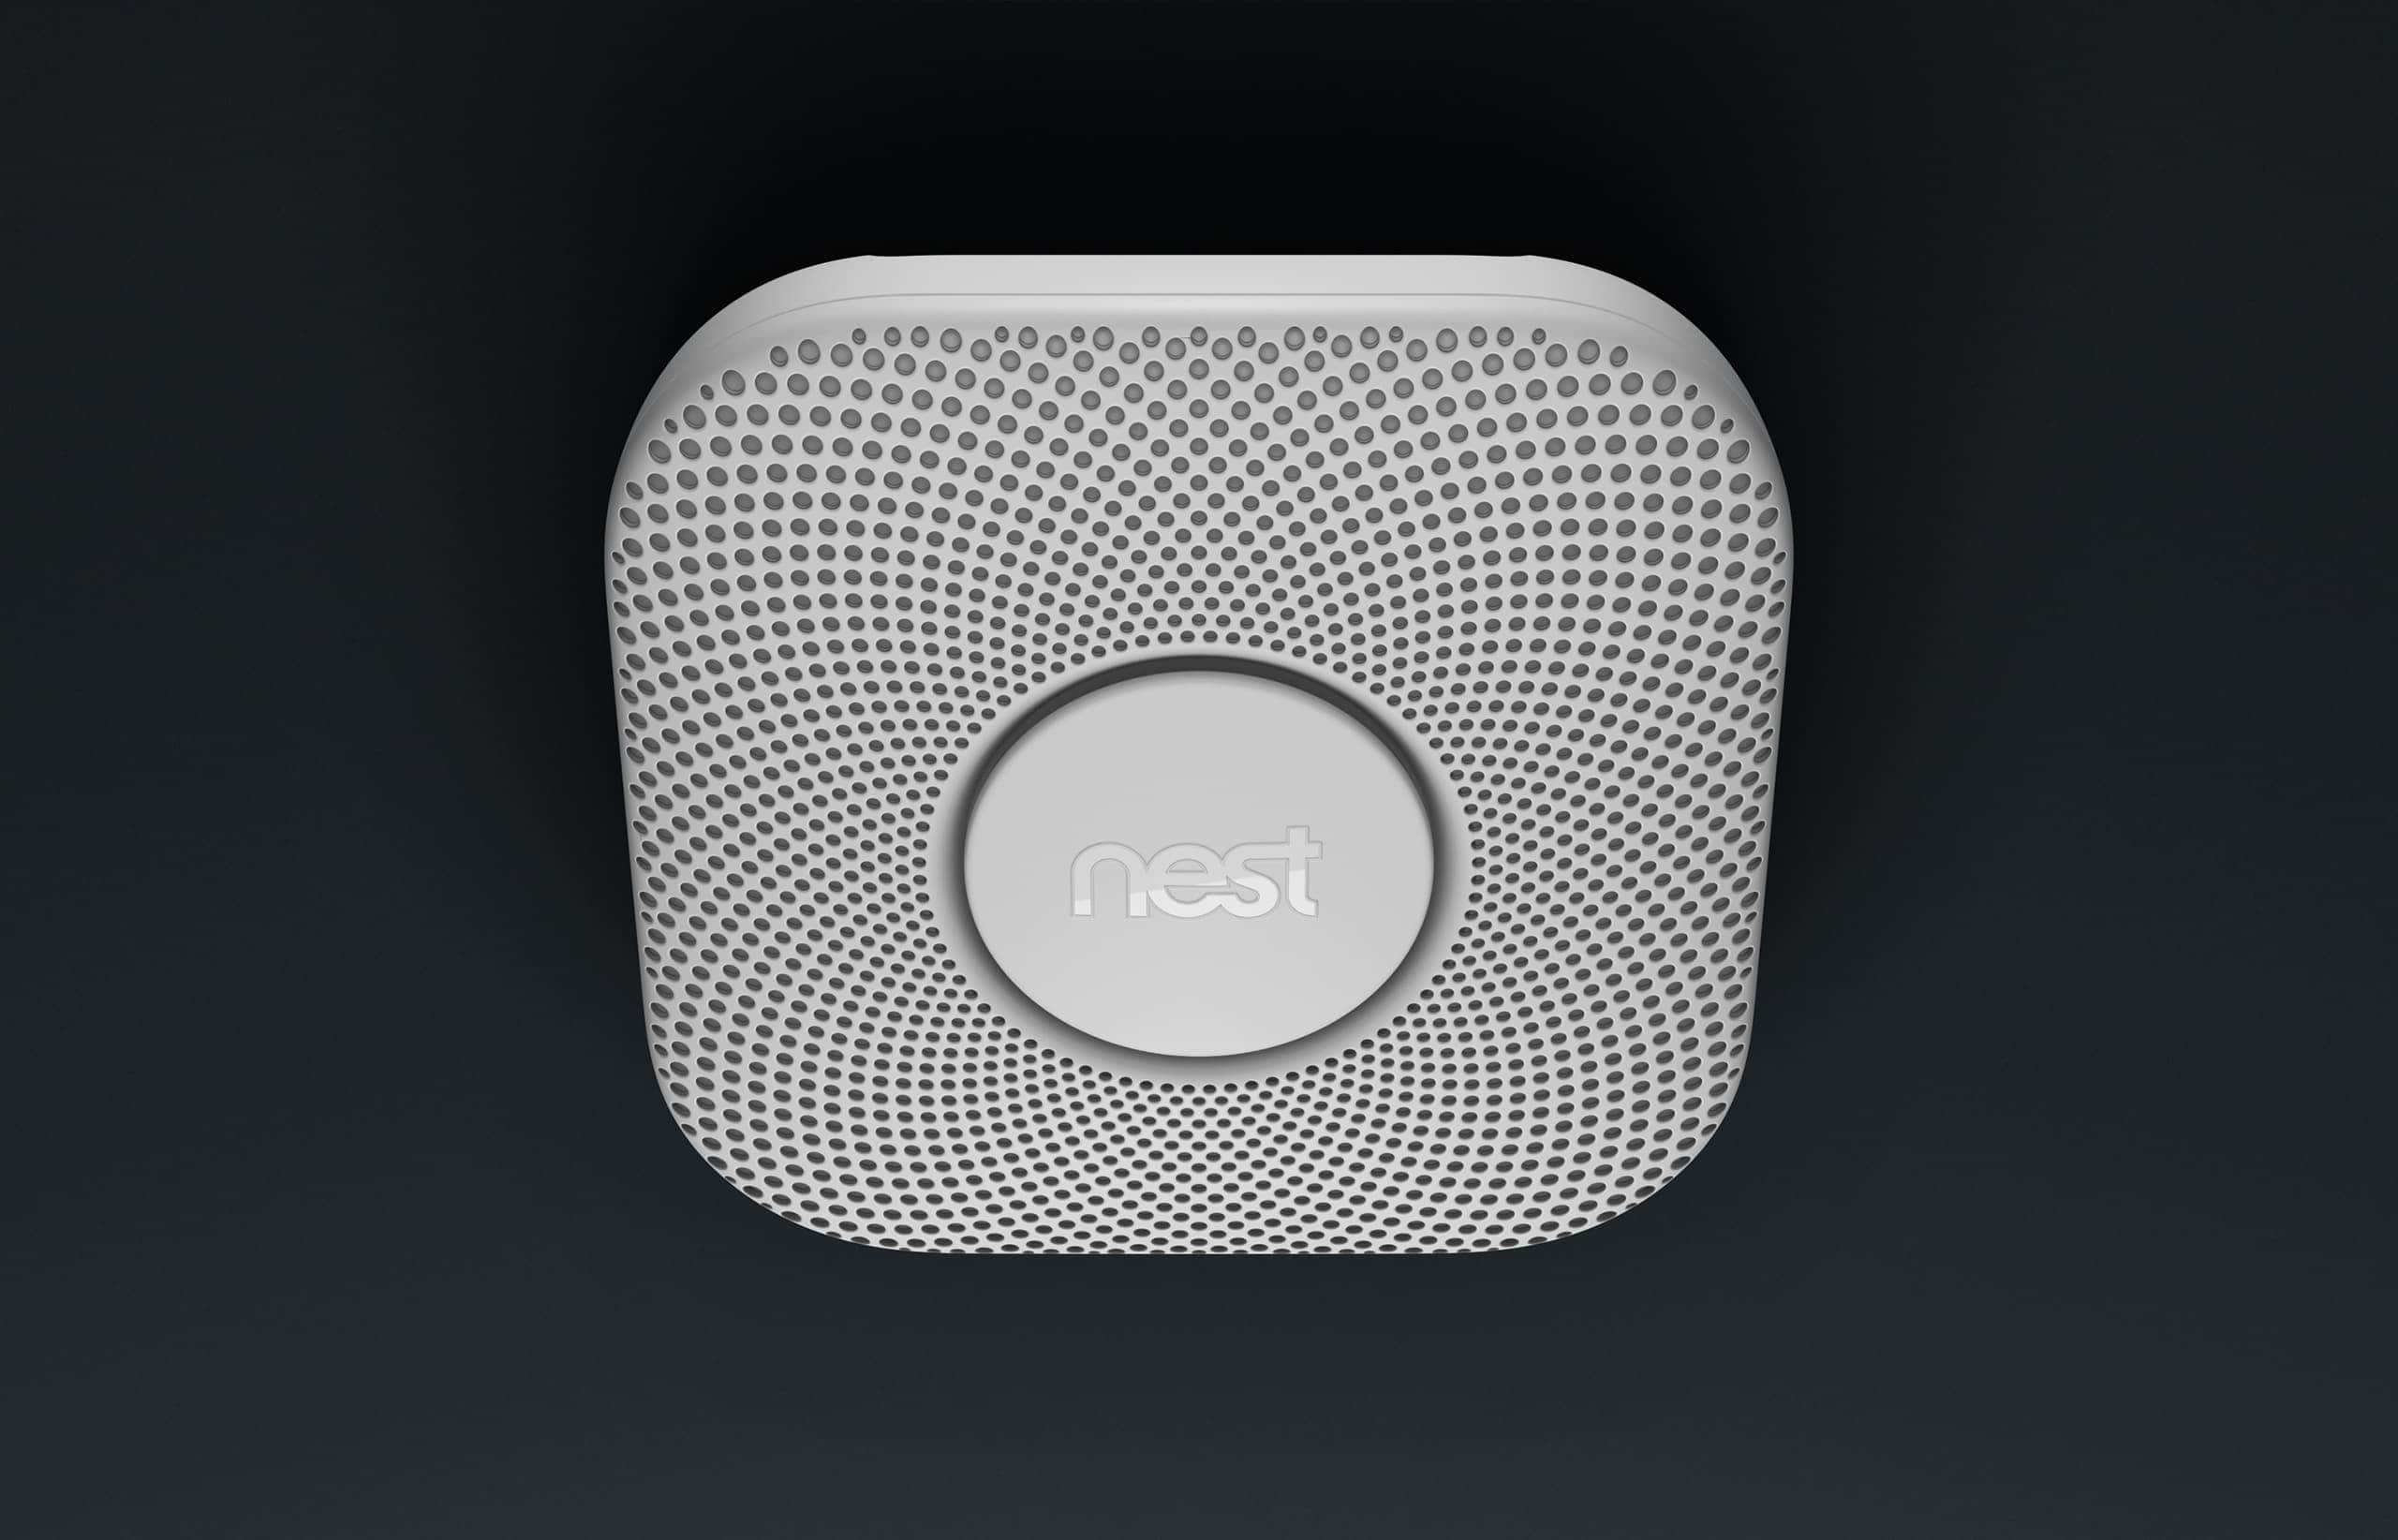 Rook Co Melder Nest Protect Expect More From Your Smoke And Carbon Monoxide